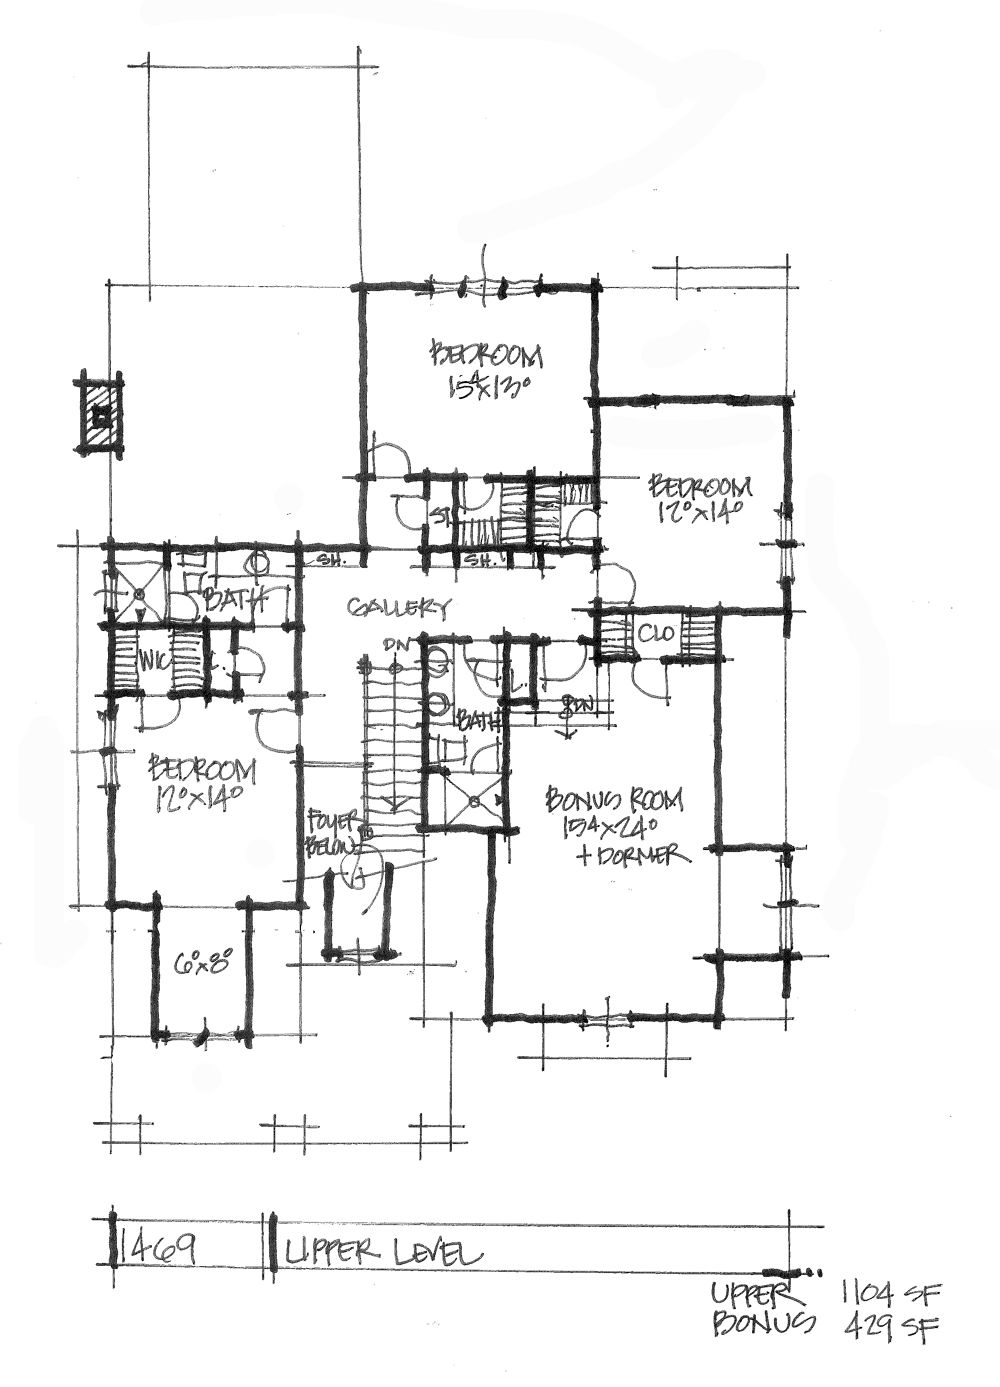 CONCEPTUAL HOUSE PLAN 1469 MODERN AND FAMILYFRIENDLY – Family Friendly House Plans